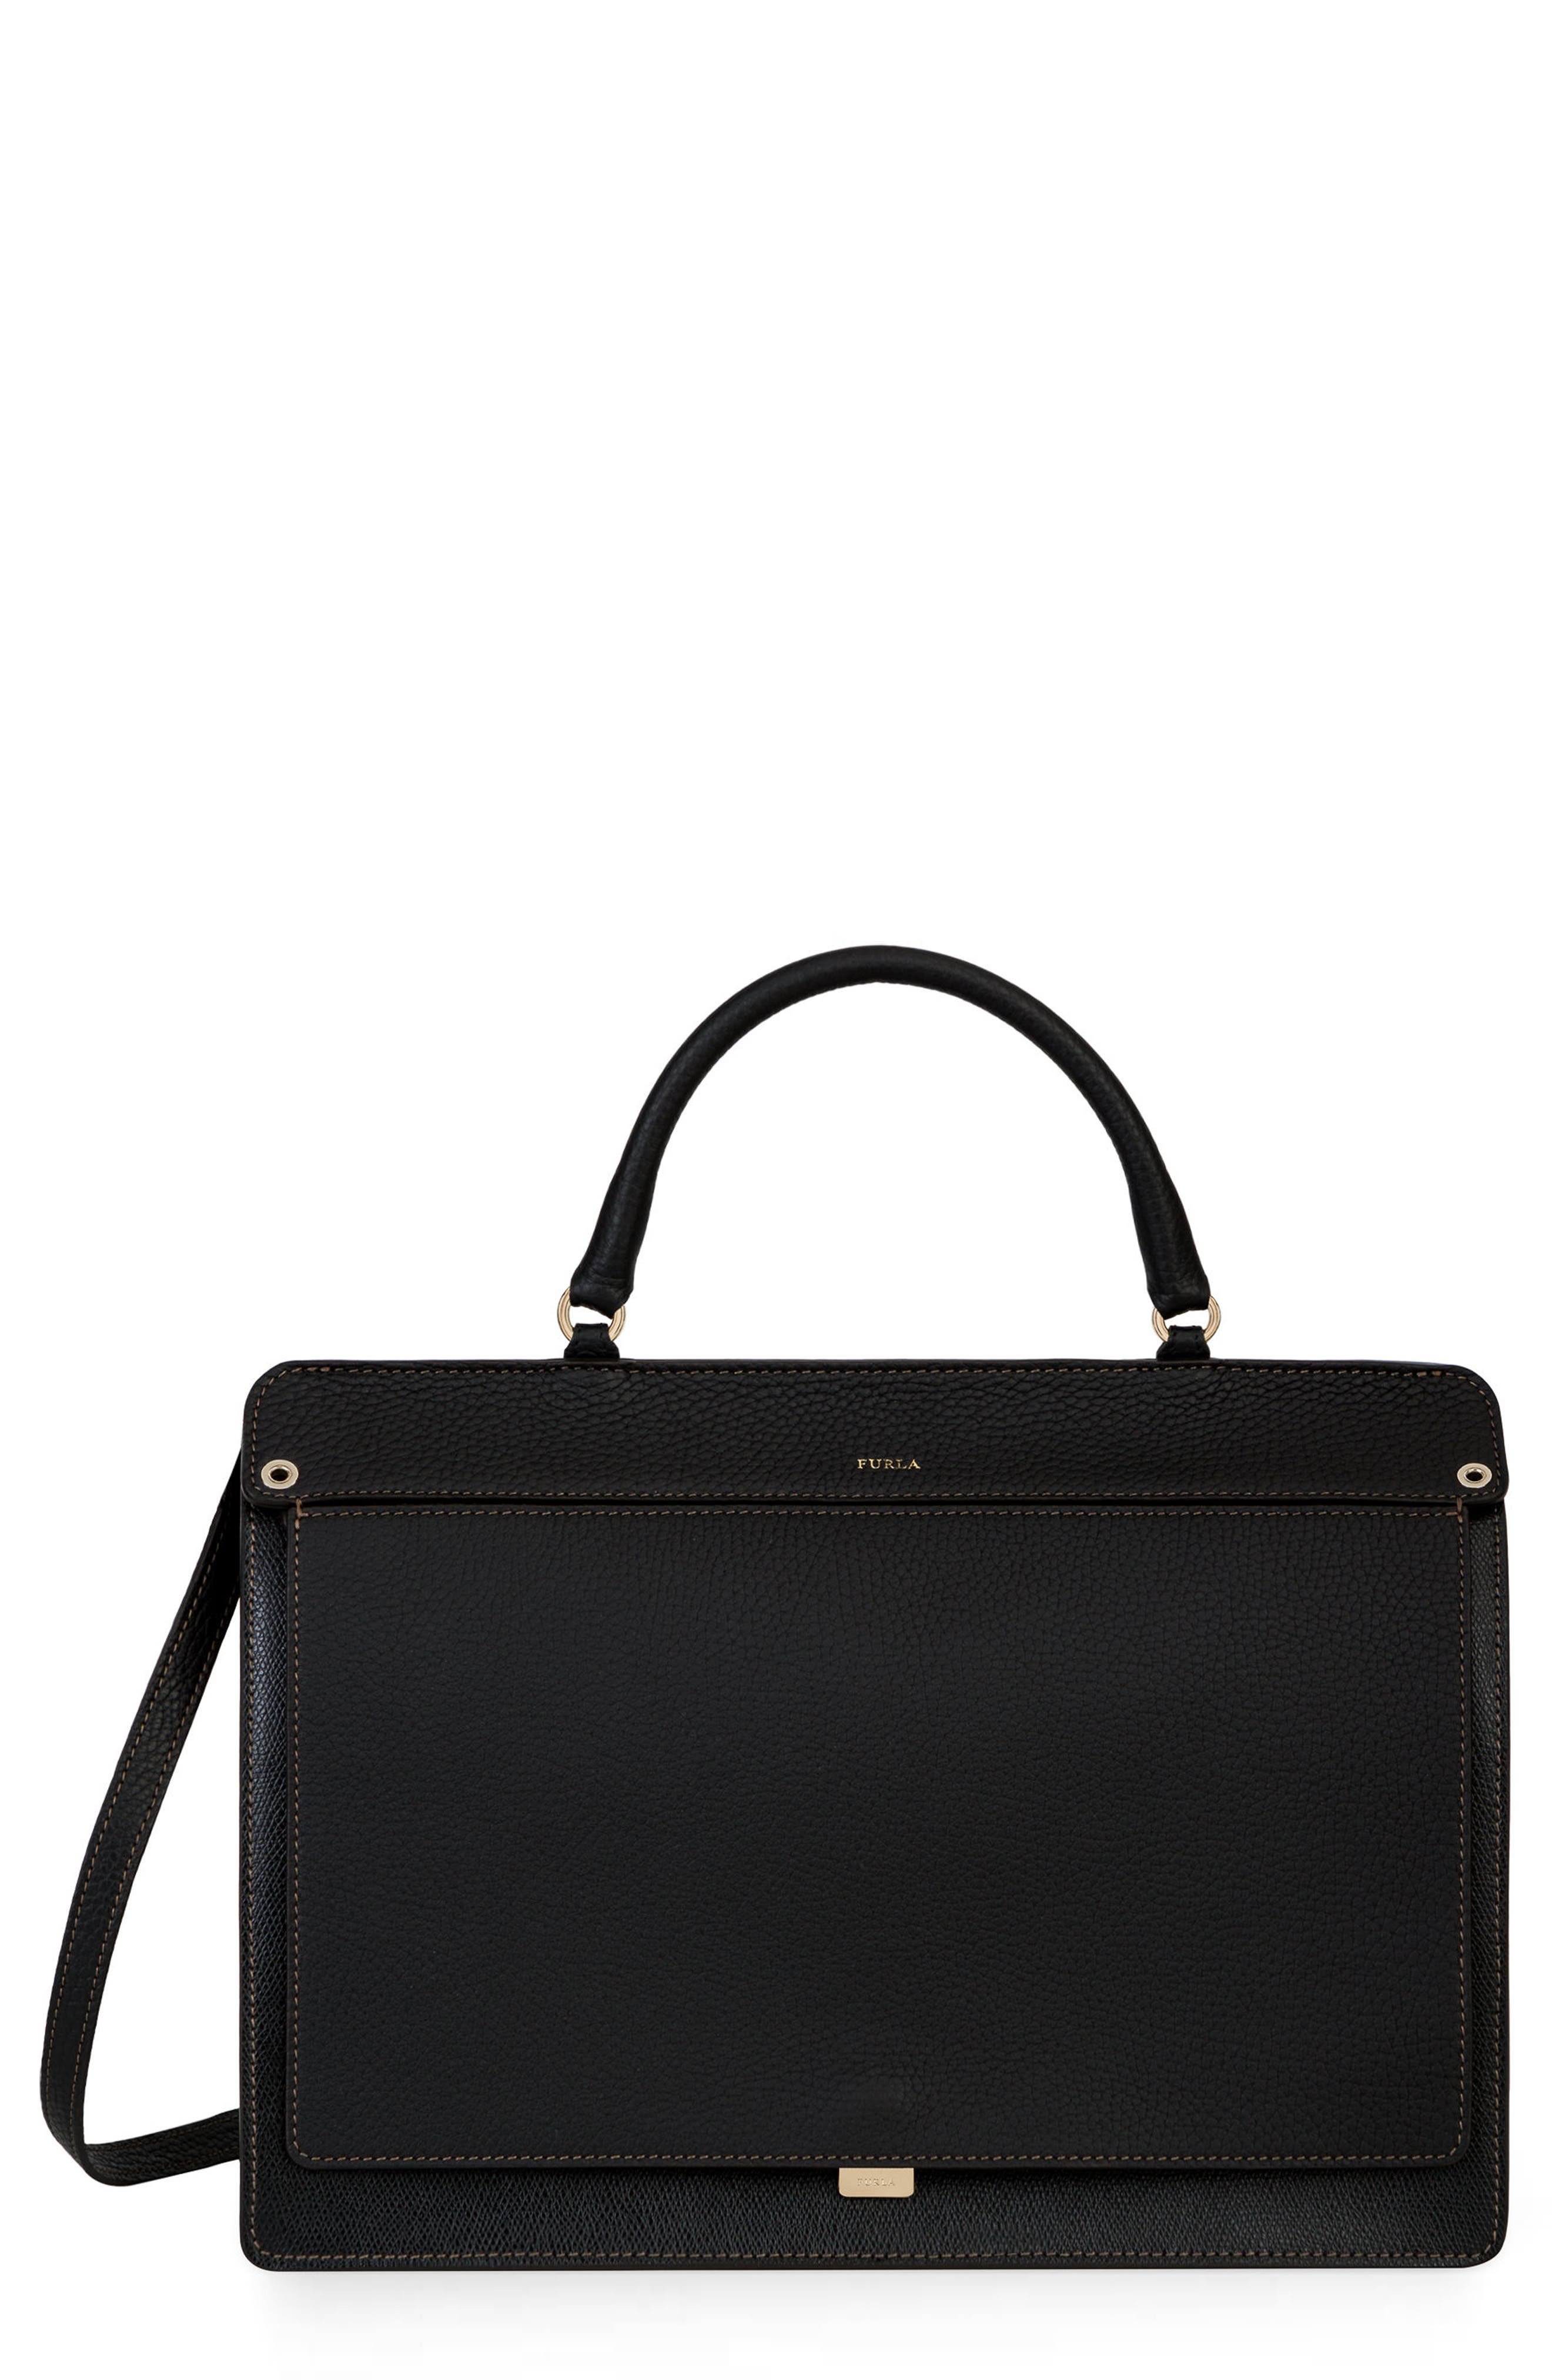 Alternate Image 1 Selected - Furla Like Leather Top Handle Satchel